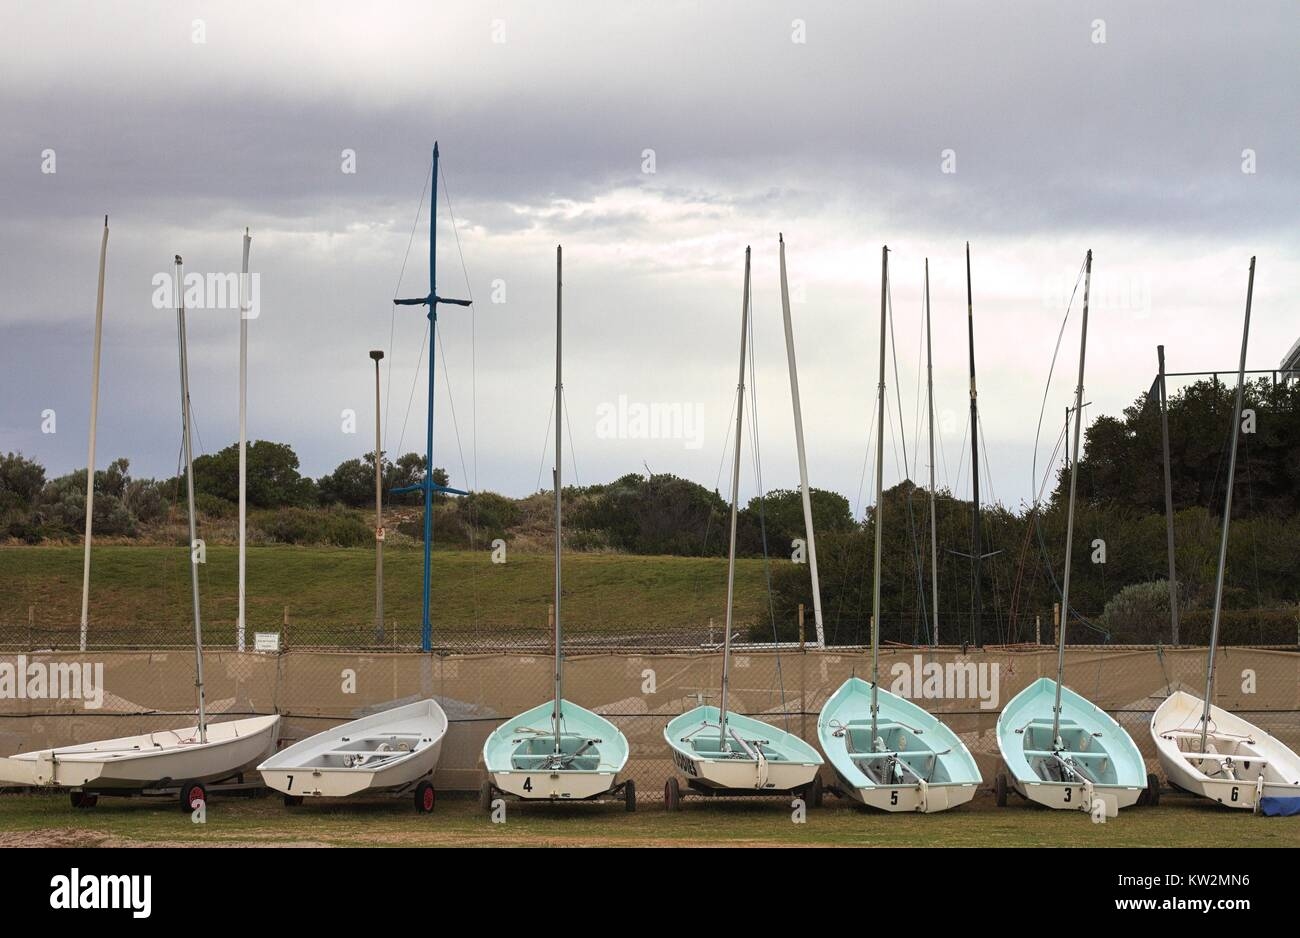 Sven small sailboats lined up in a boatyard, facing inland with grey cloudy sky. Stock Photo